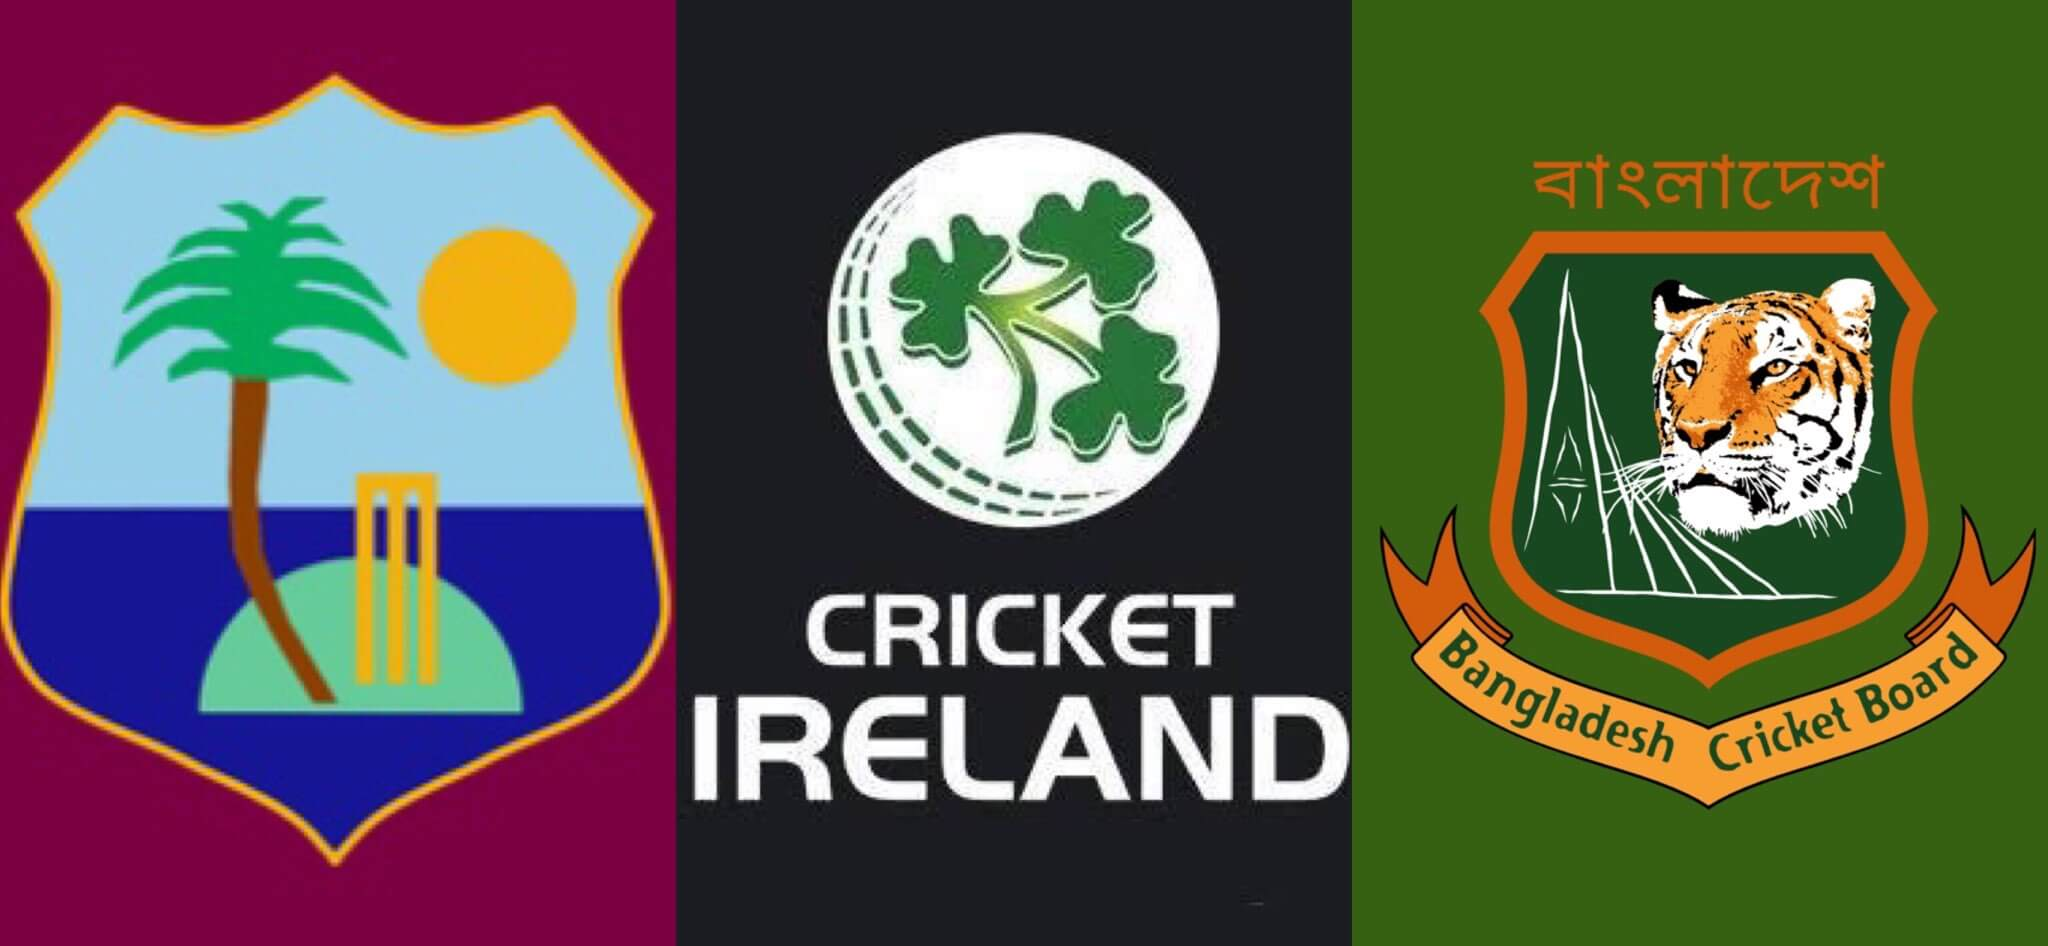 West Indies and Bangladesh to play Tri-series in Ireland